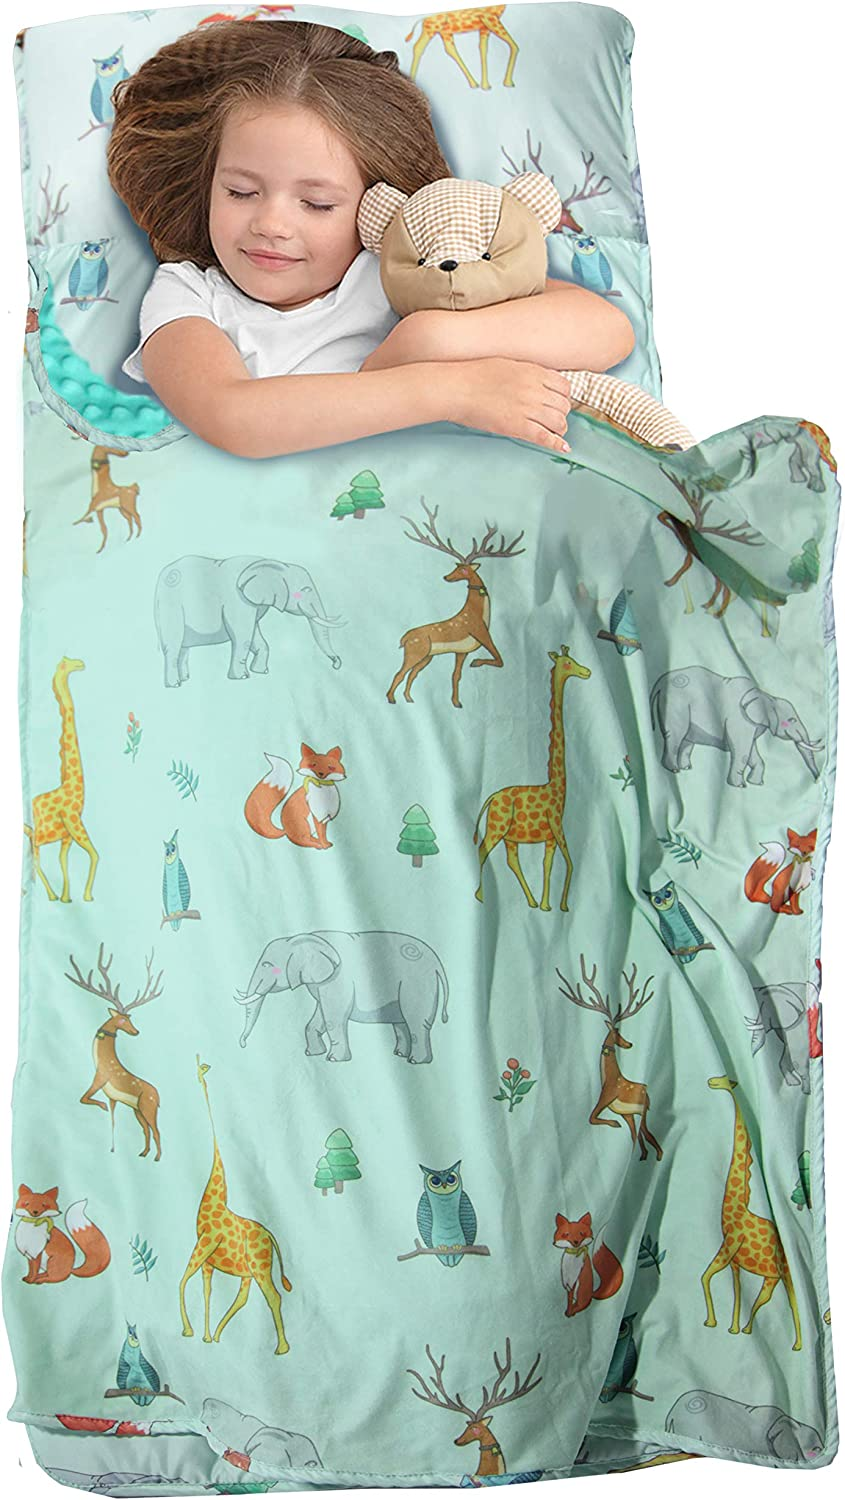 MAXTID Toddler Nap Mat with Removable Pillow for Daycare and Preschool (Turquoise Animal)